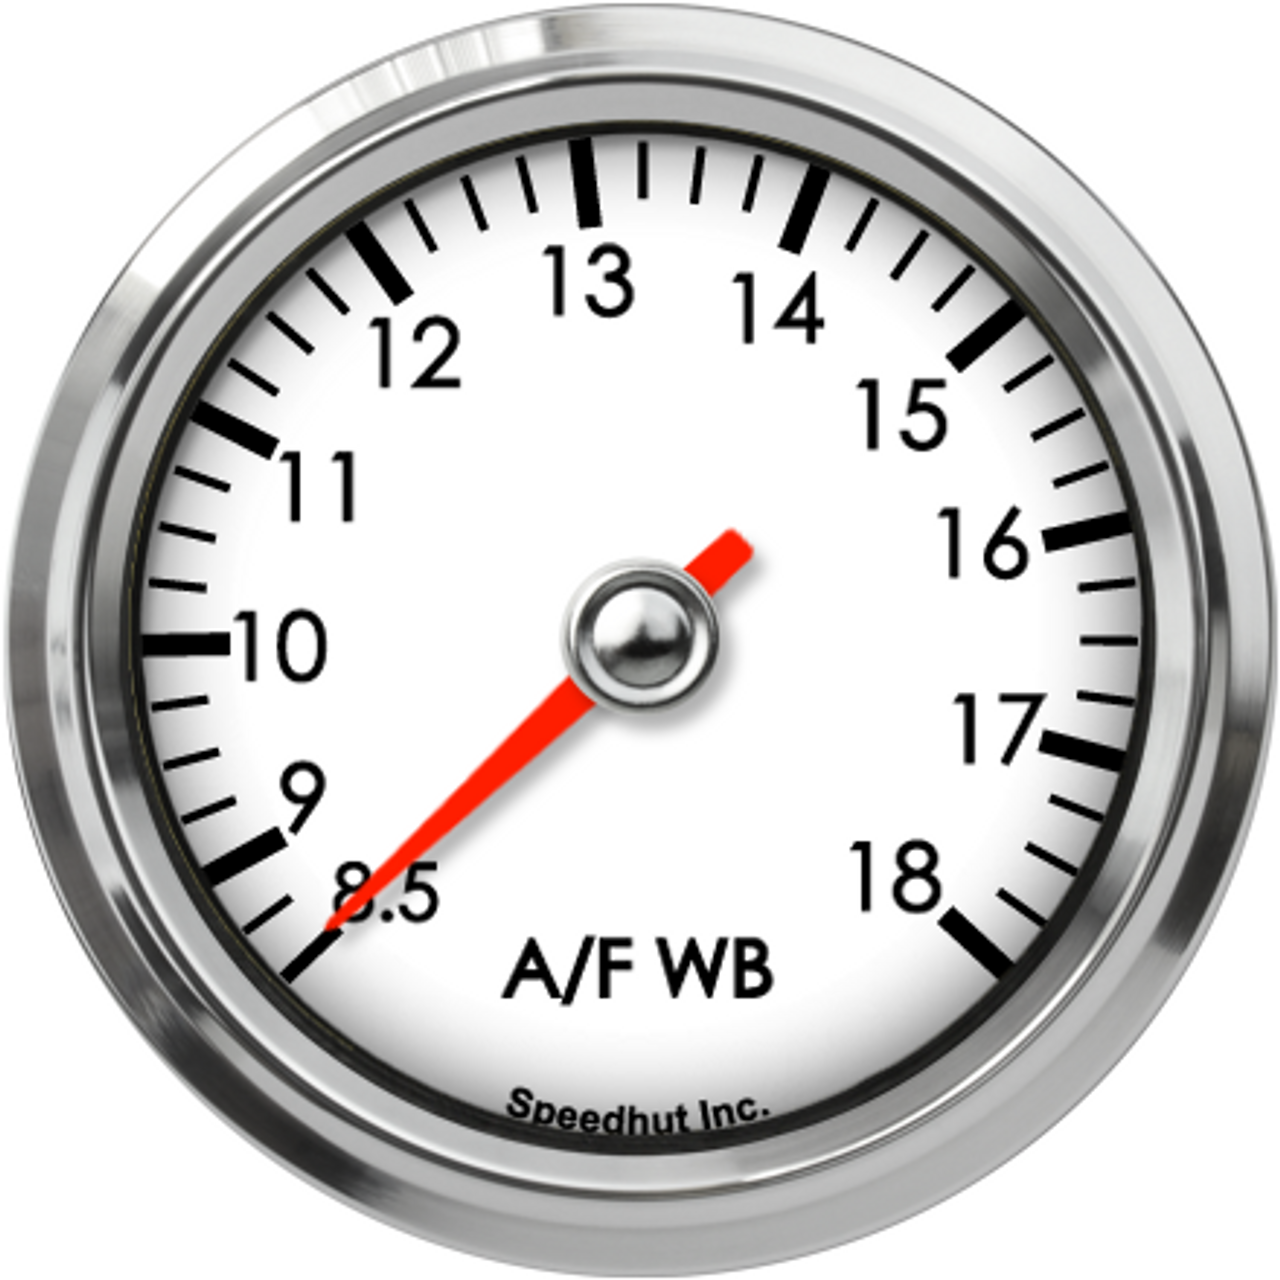 """2-5/8"""" Classic Standalone Air/Fuel Wideband with Analog Out, O2 gauge 8.5-18"""